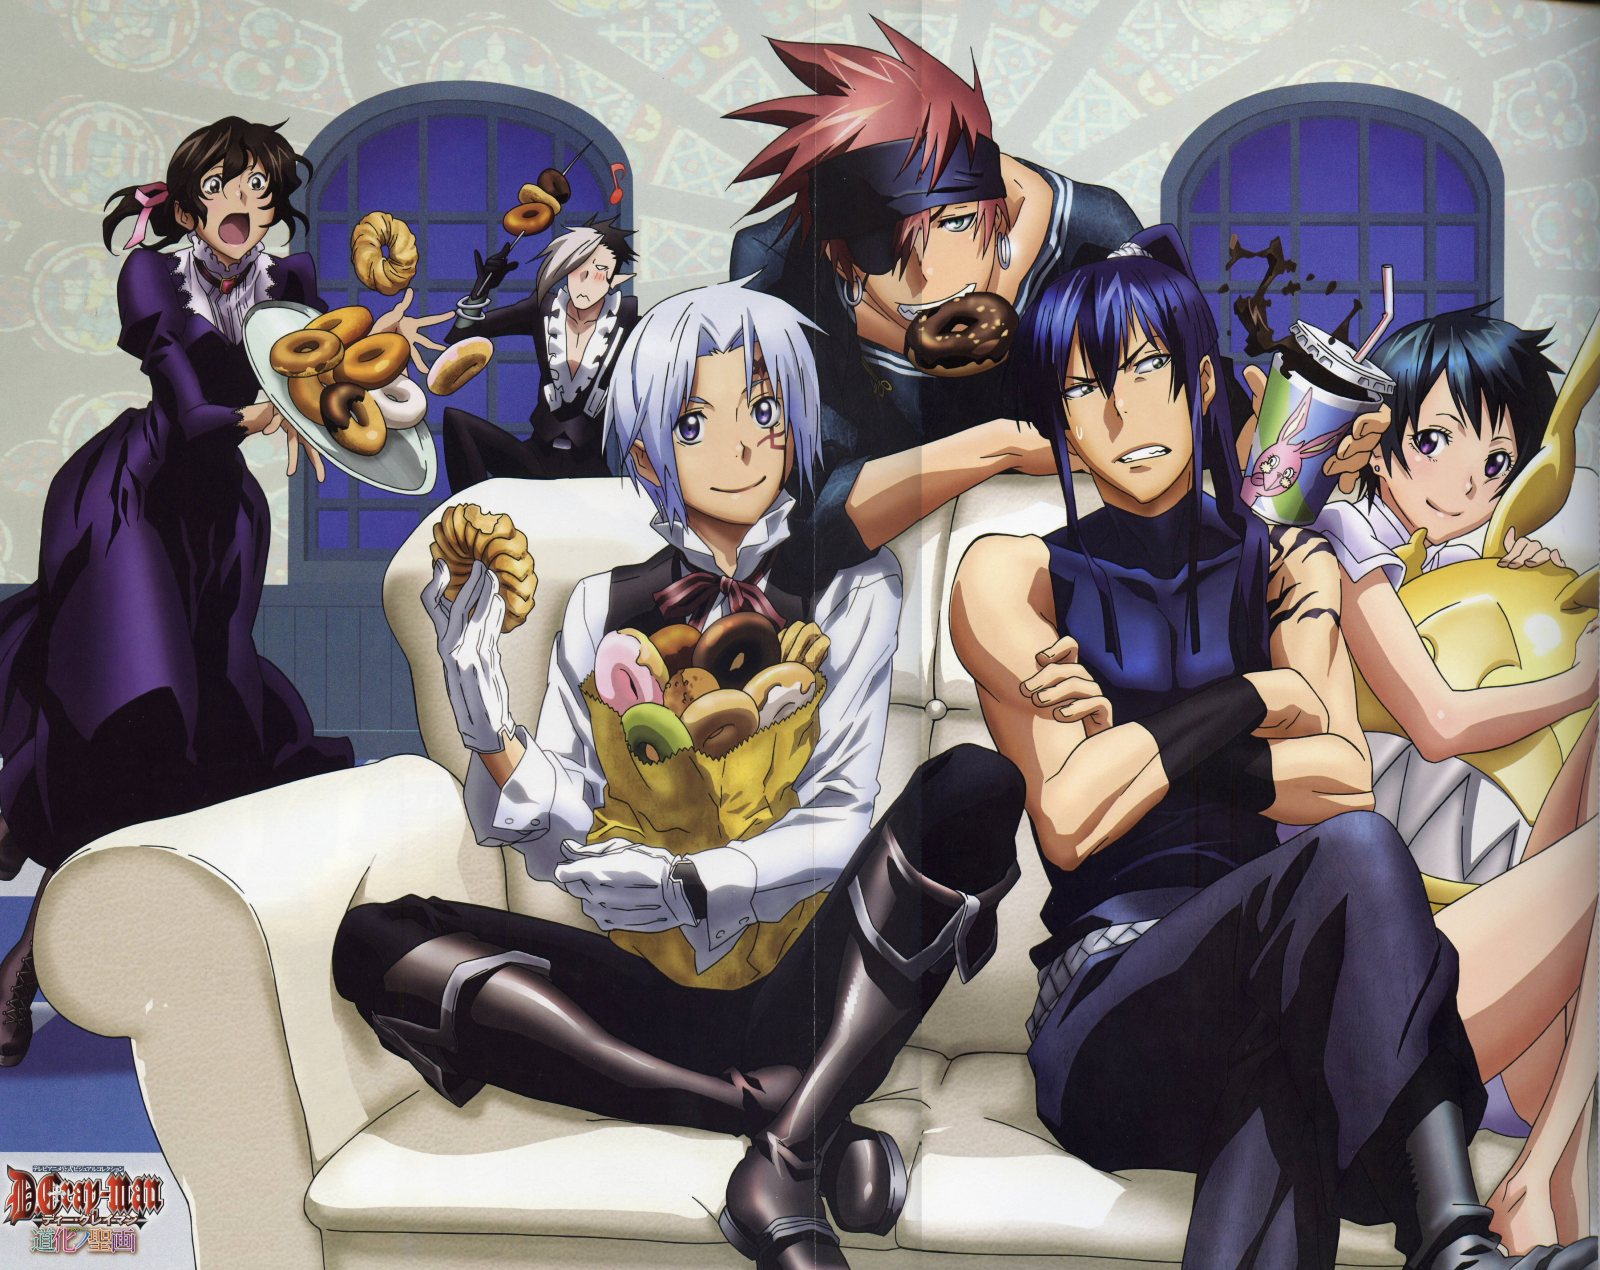 D Gray Man Anime Characters : Awesome anime club images d gray man hd wallpaper and